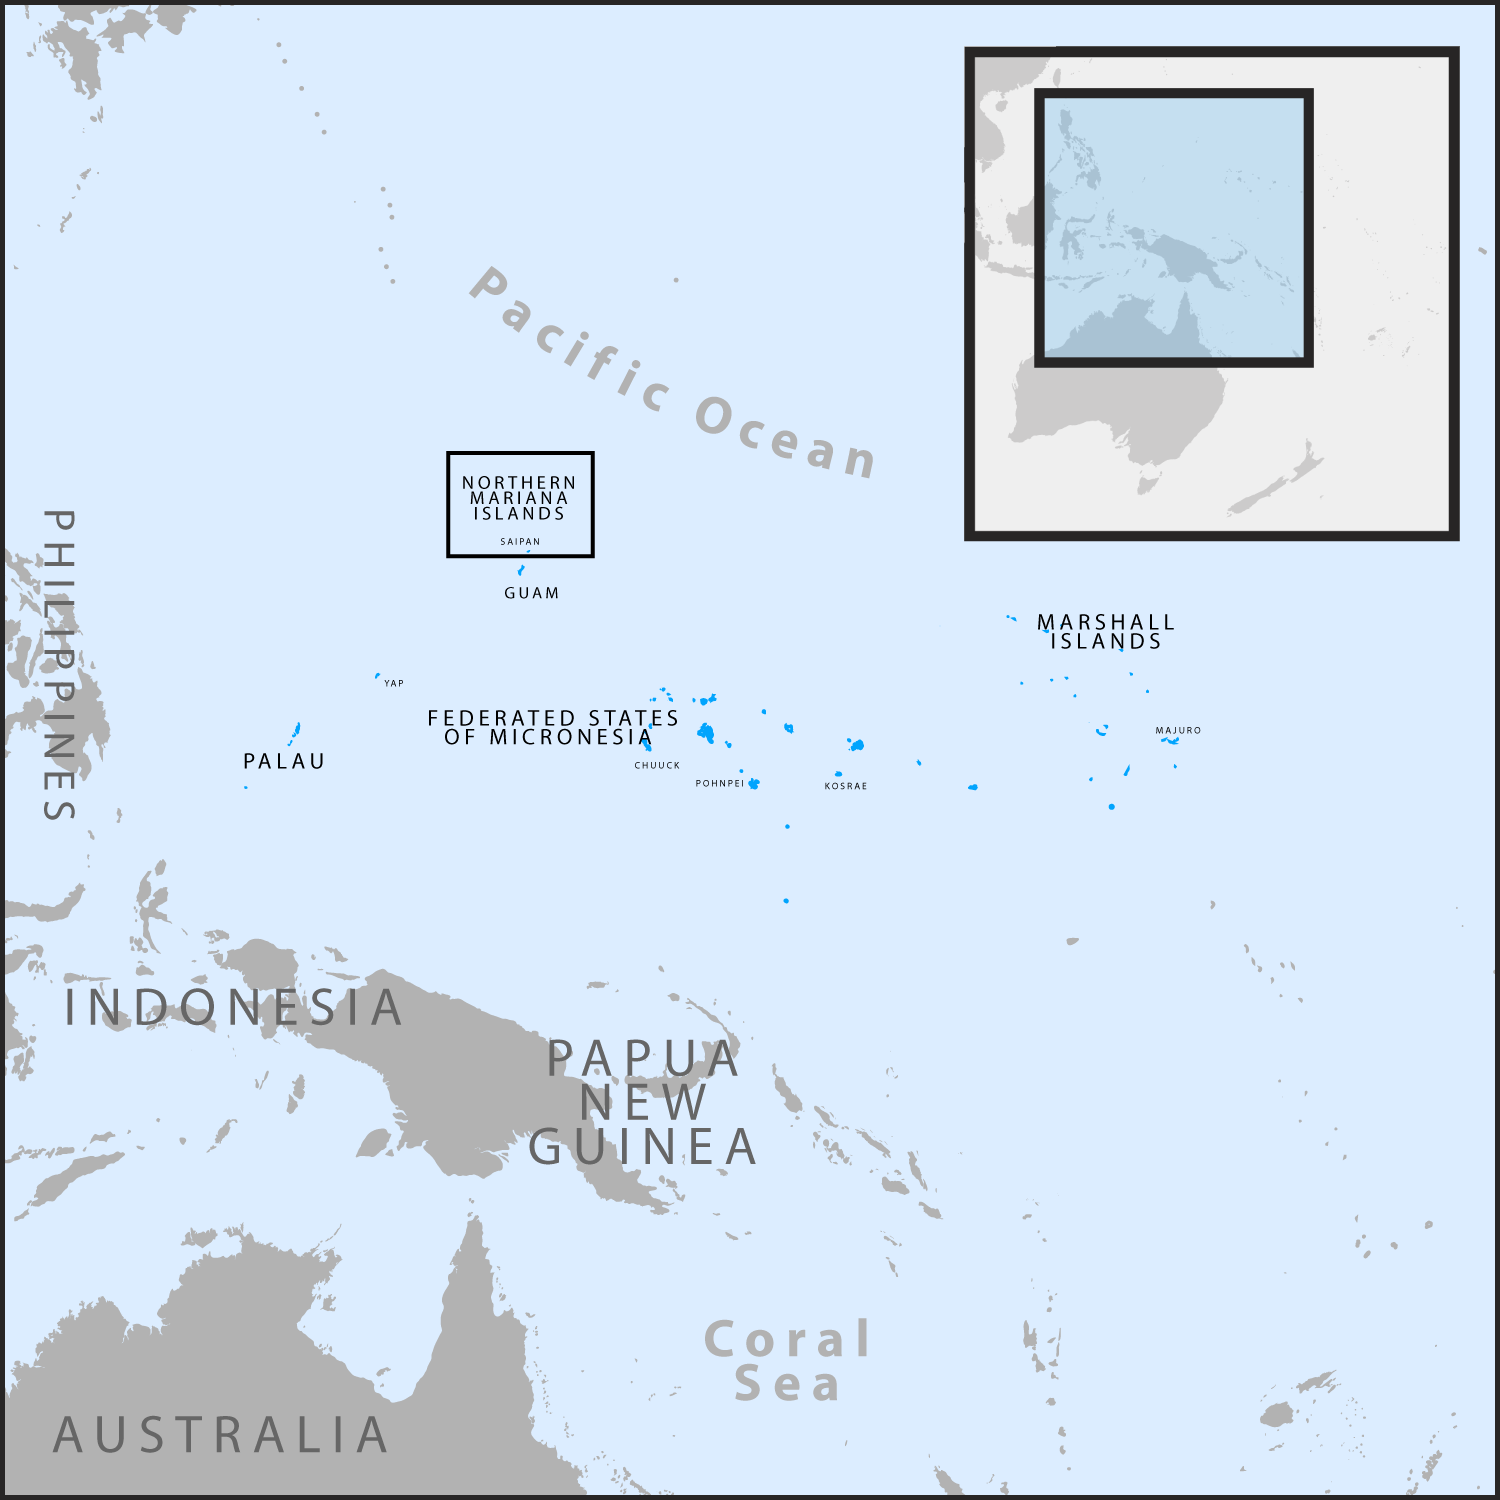 Map of the Commonwealth of the Northern Mariana Islands